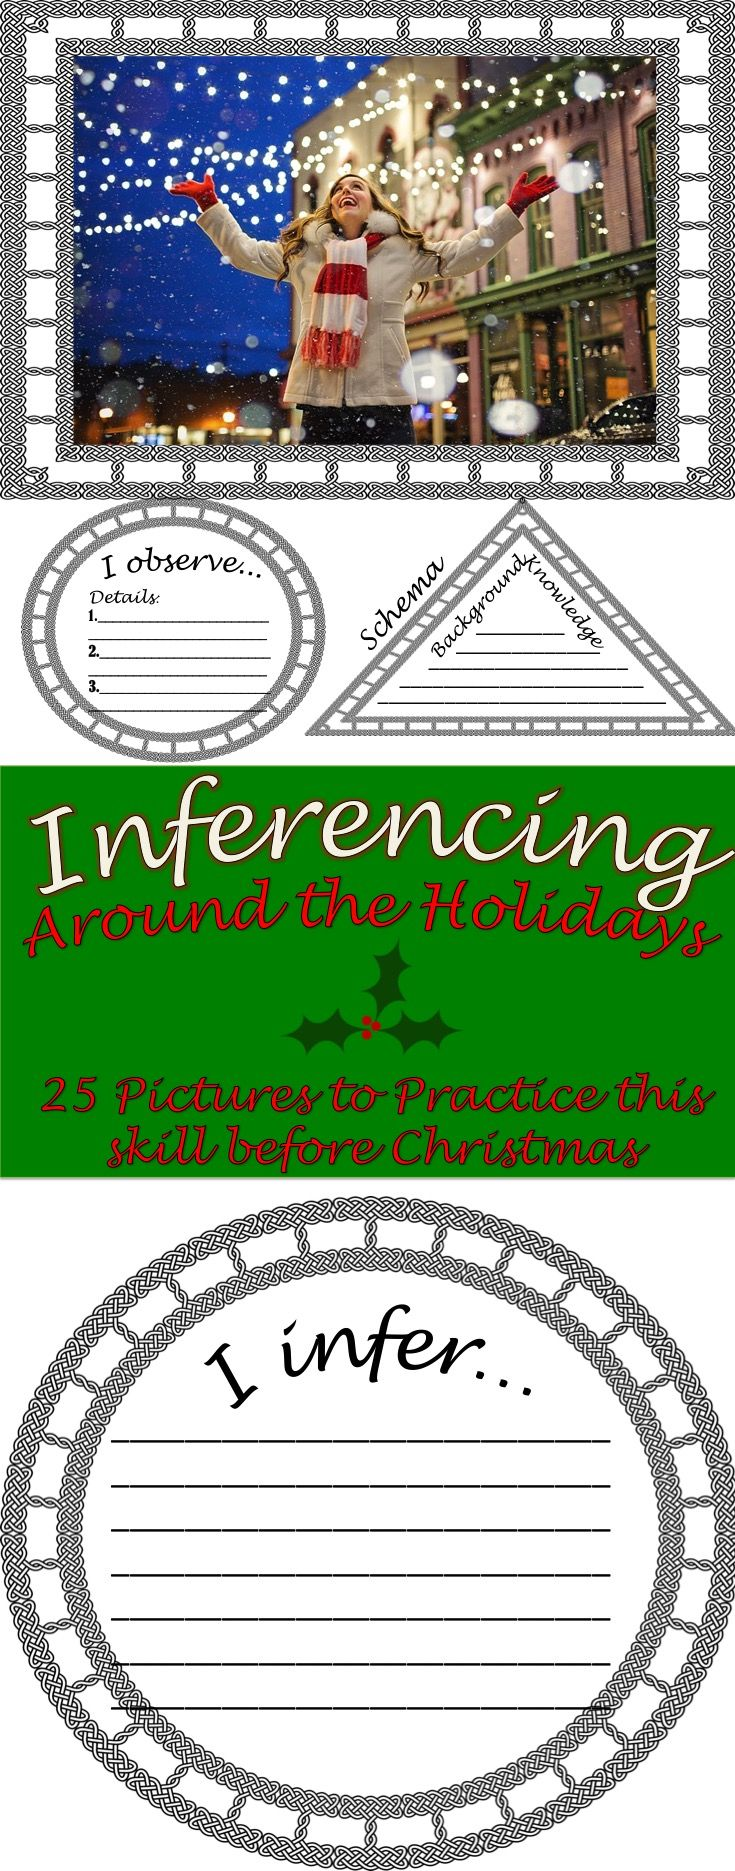 Inferencing Pictures: 25 Pictures with Graphic Organizers to practice  Making Inferences before Christmas #education